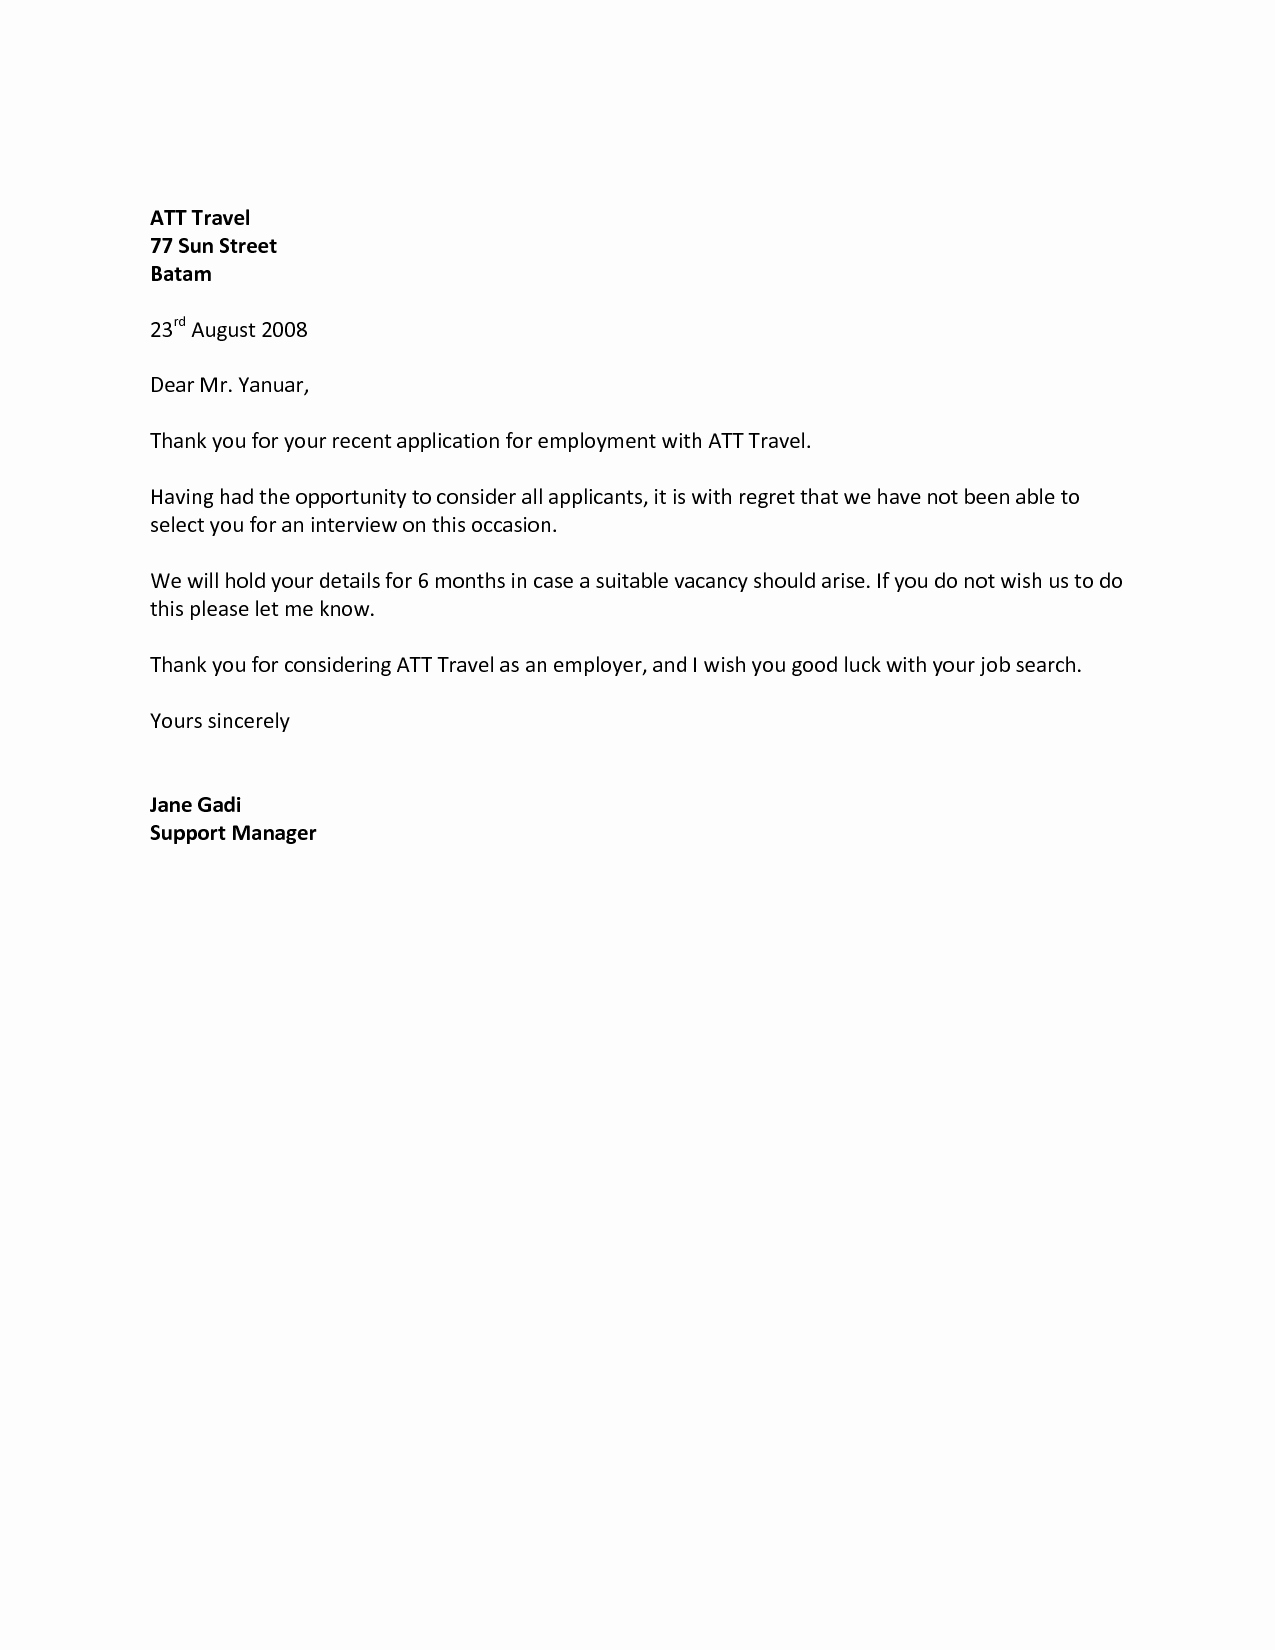 Rejection Letter for Internal Candidate Lovely How to Write A Rejection Letter Employer